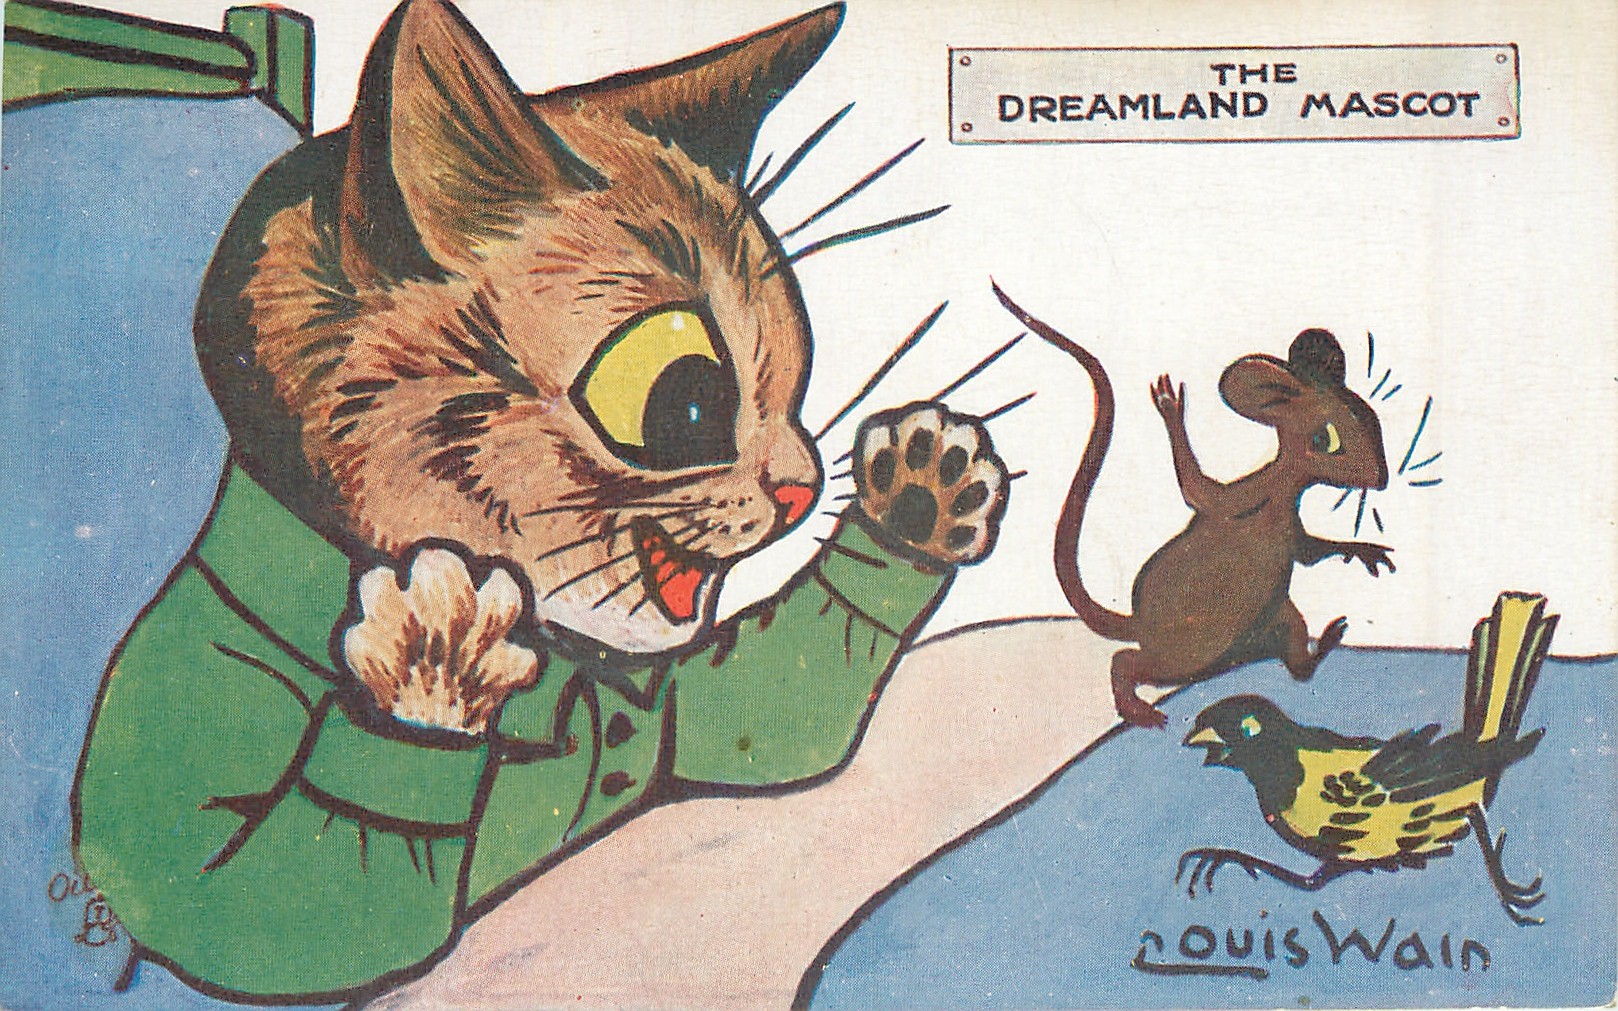 THE DREAMLAND MASCOT